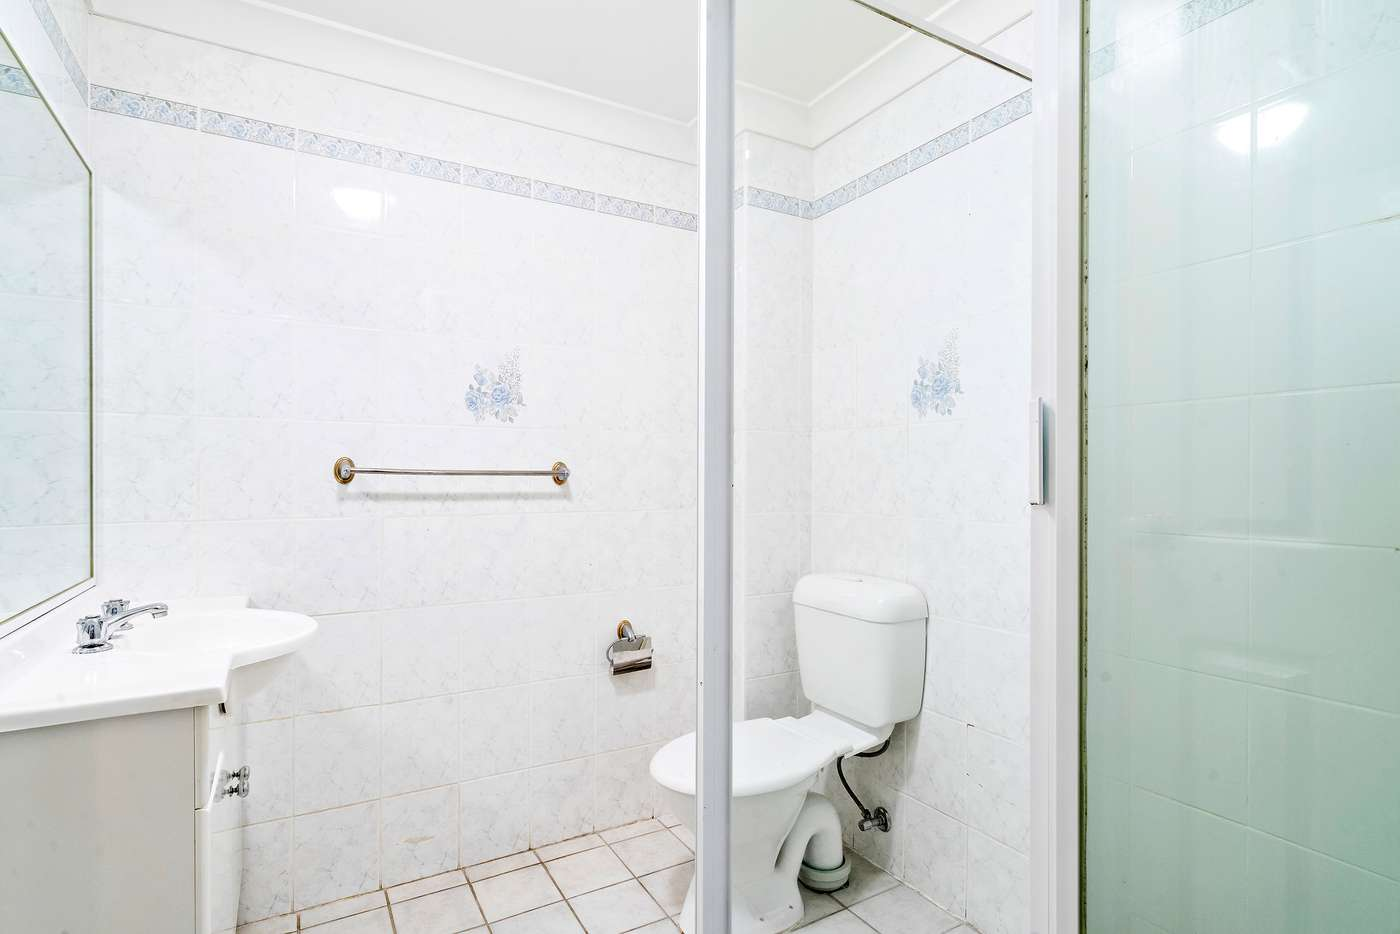 Fifth view of Homely unit listing, 14/9-11 Belmore Street, North Parramatta NSW 2151